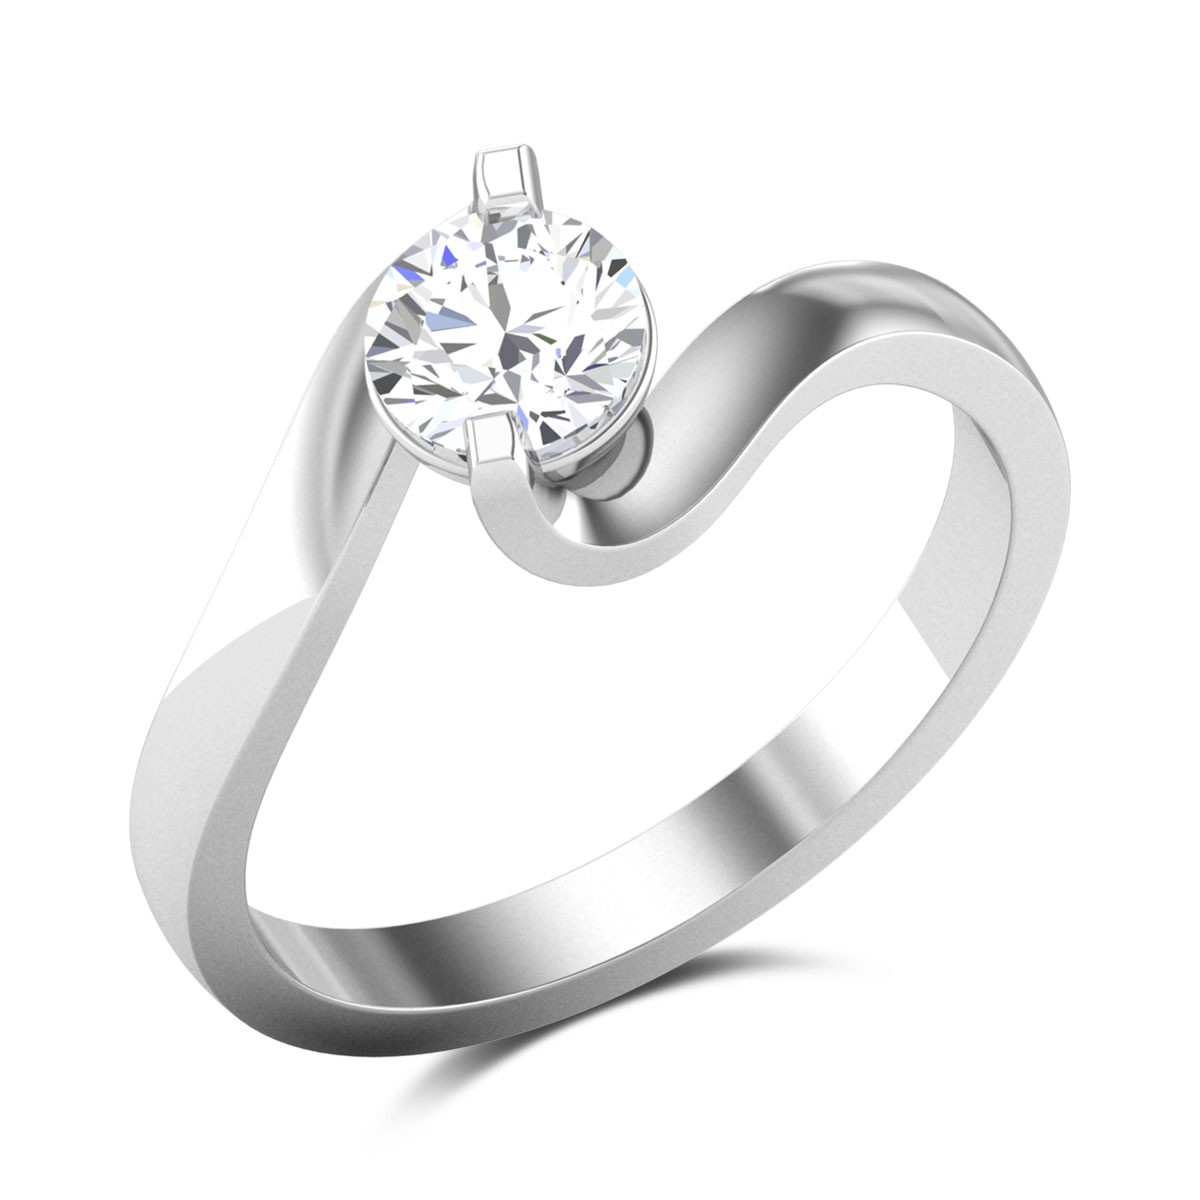 Bidisha 2 Prong Solitaire Ring